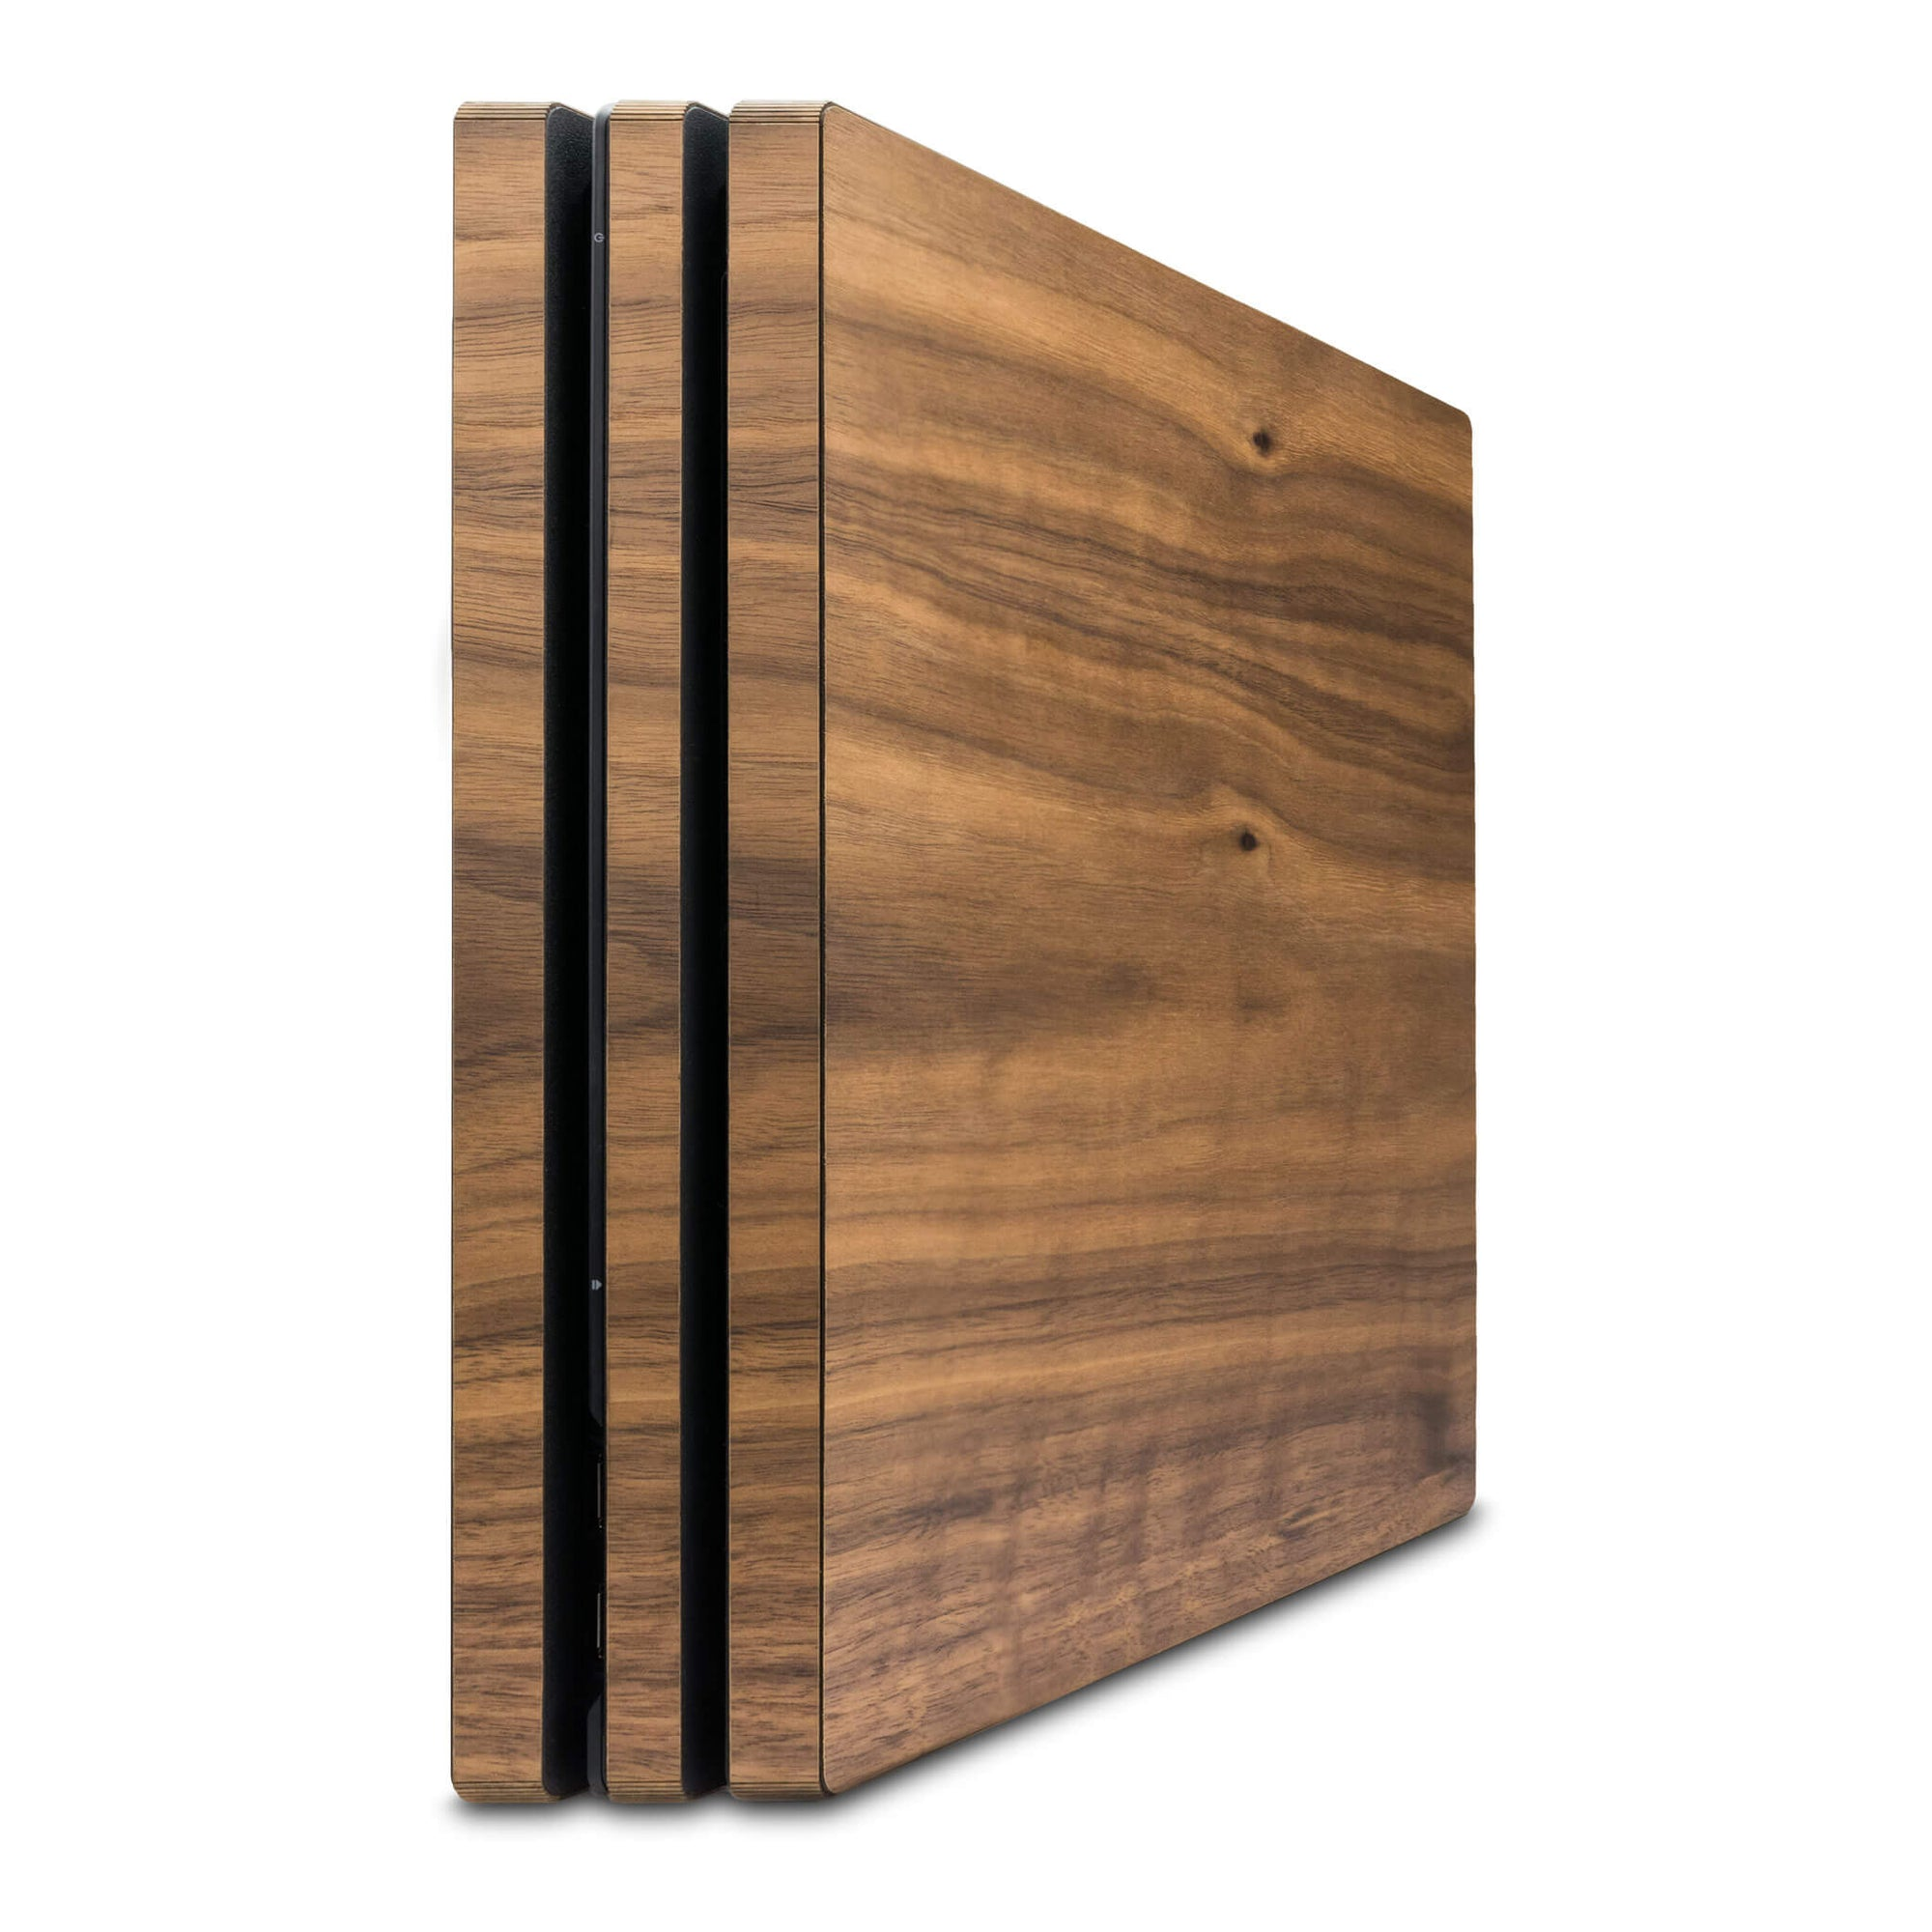 Playstation 4 Pro Walnut Wood Cover - balolo